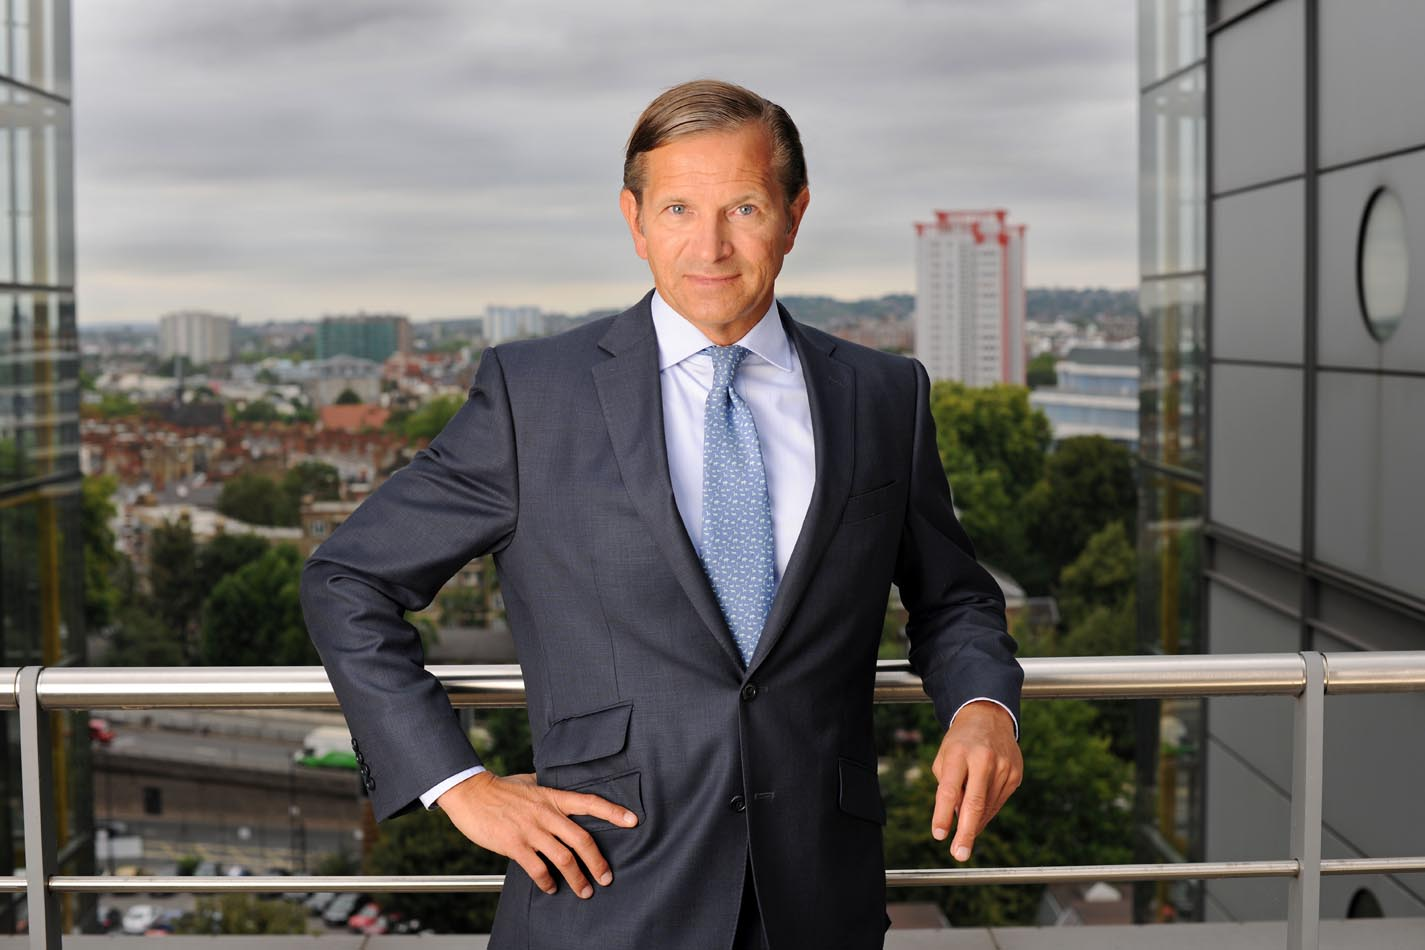 M&S CEO Marc Bolland